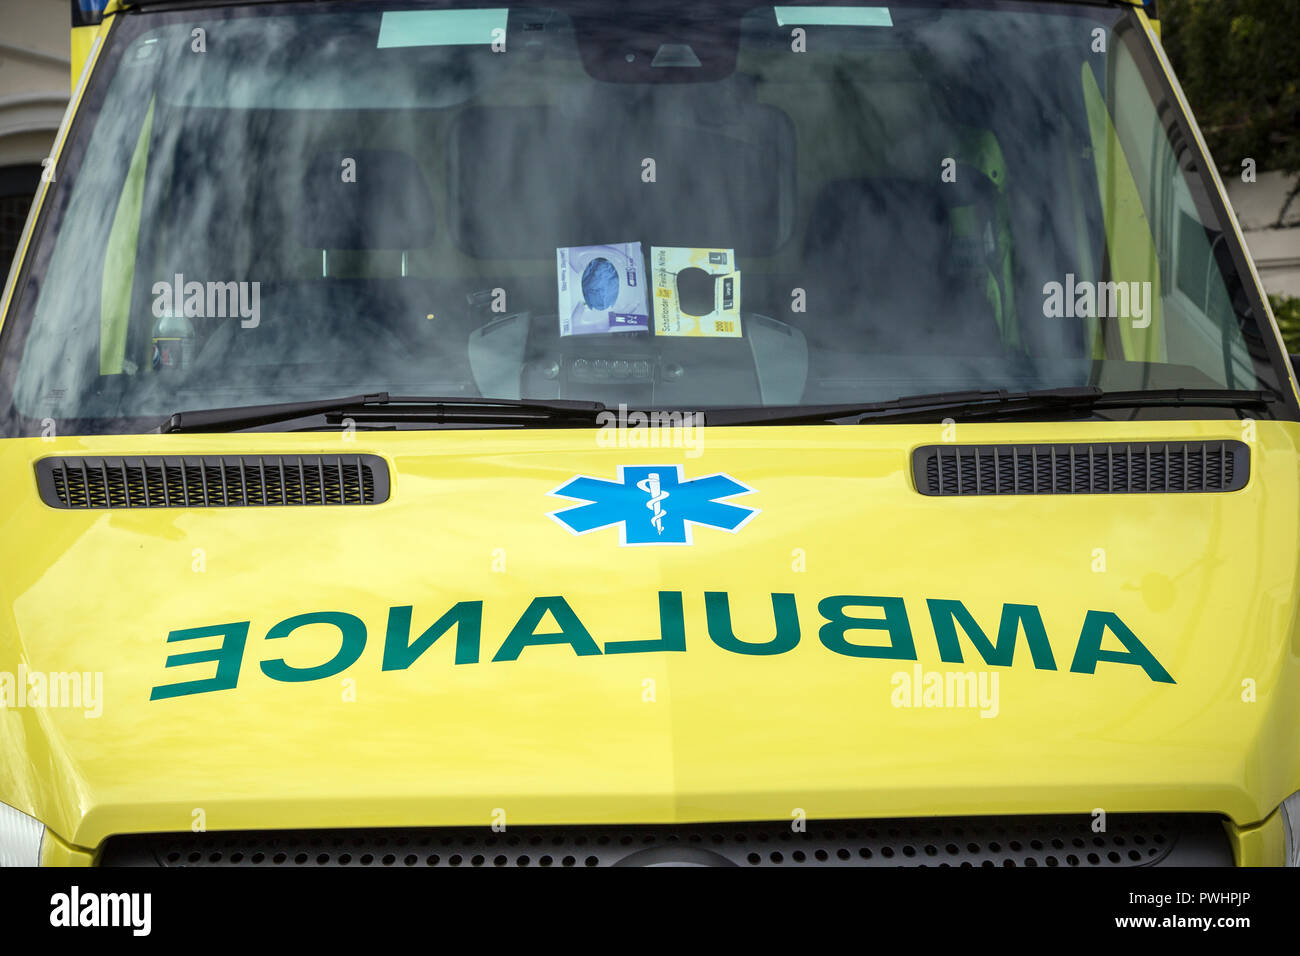 Ambulance a vehicle equipped for taking sick or injured people ,south devon ambulance service,science or practice of medicine,technological, NHS, - Stock Image